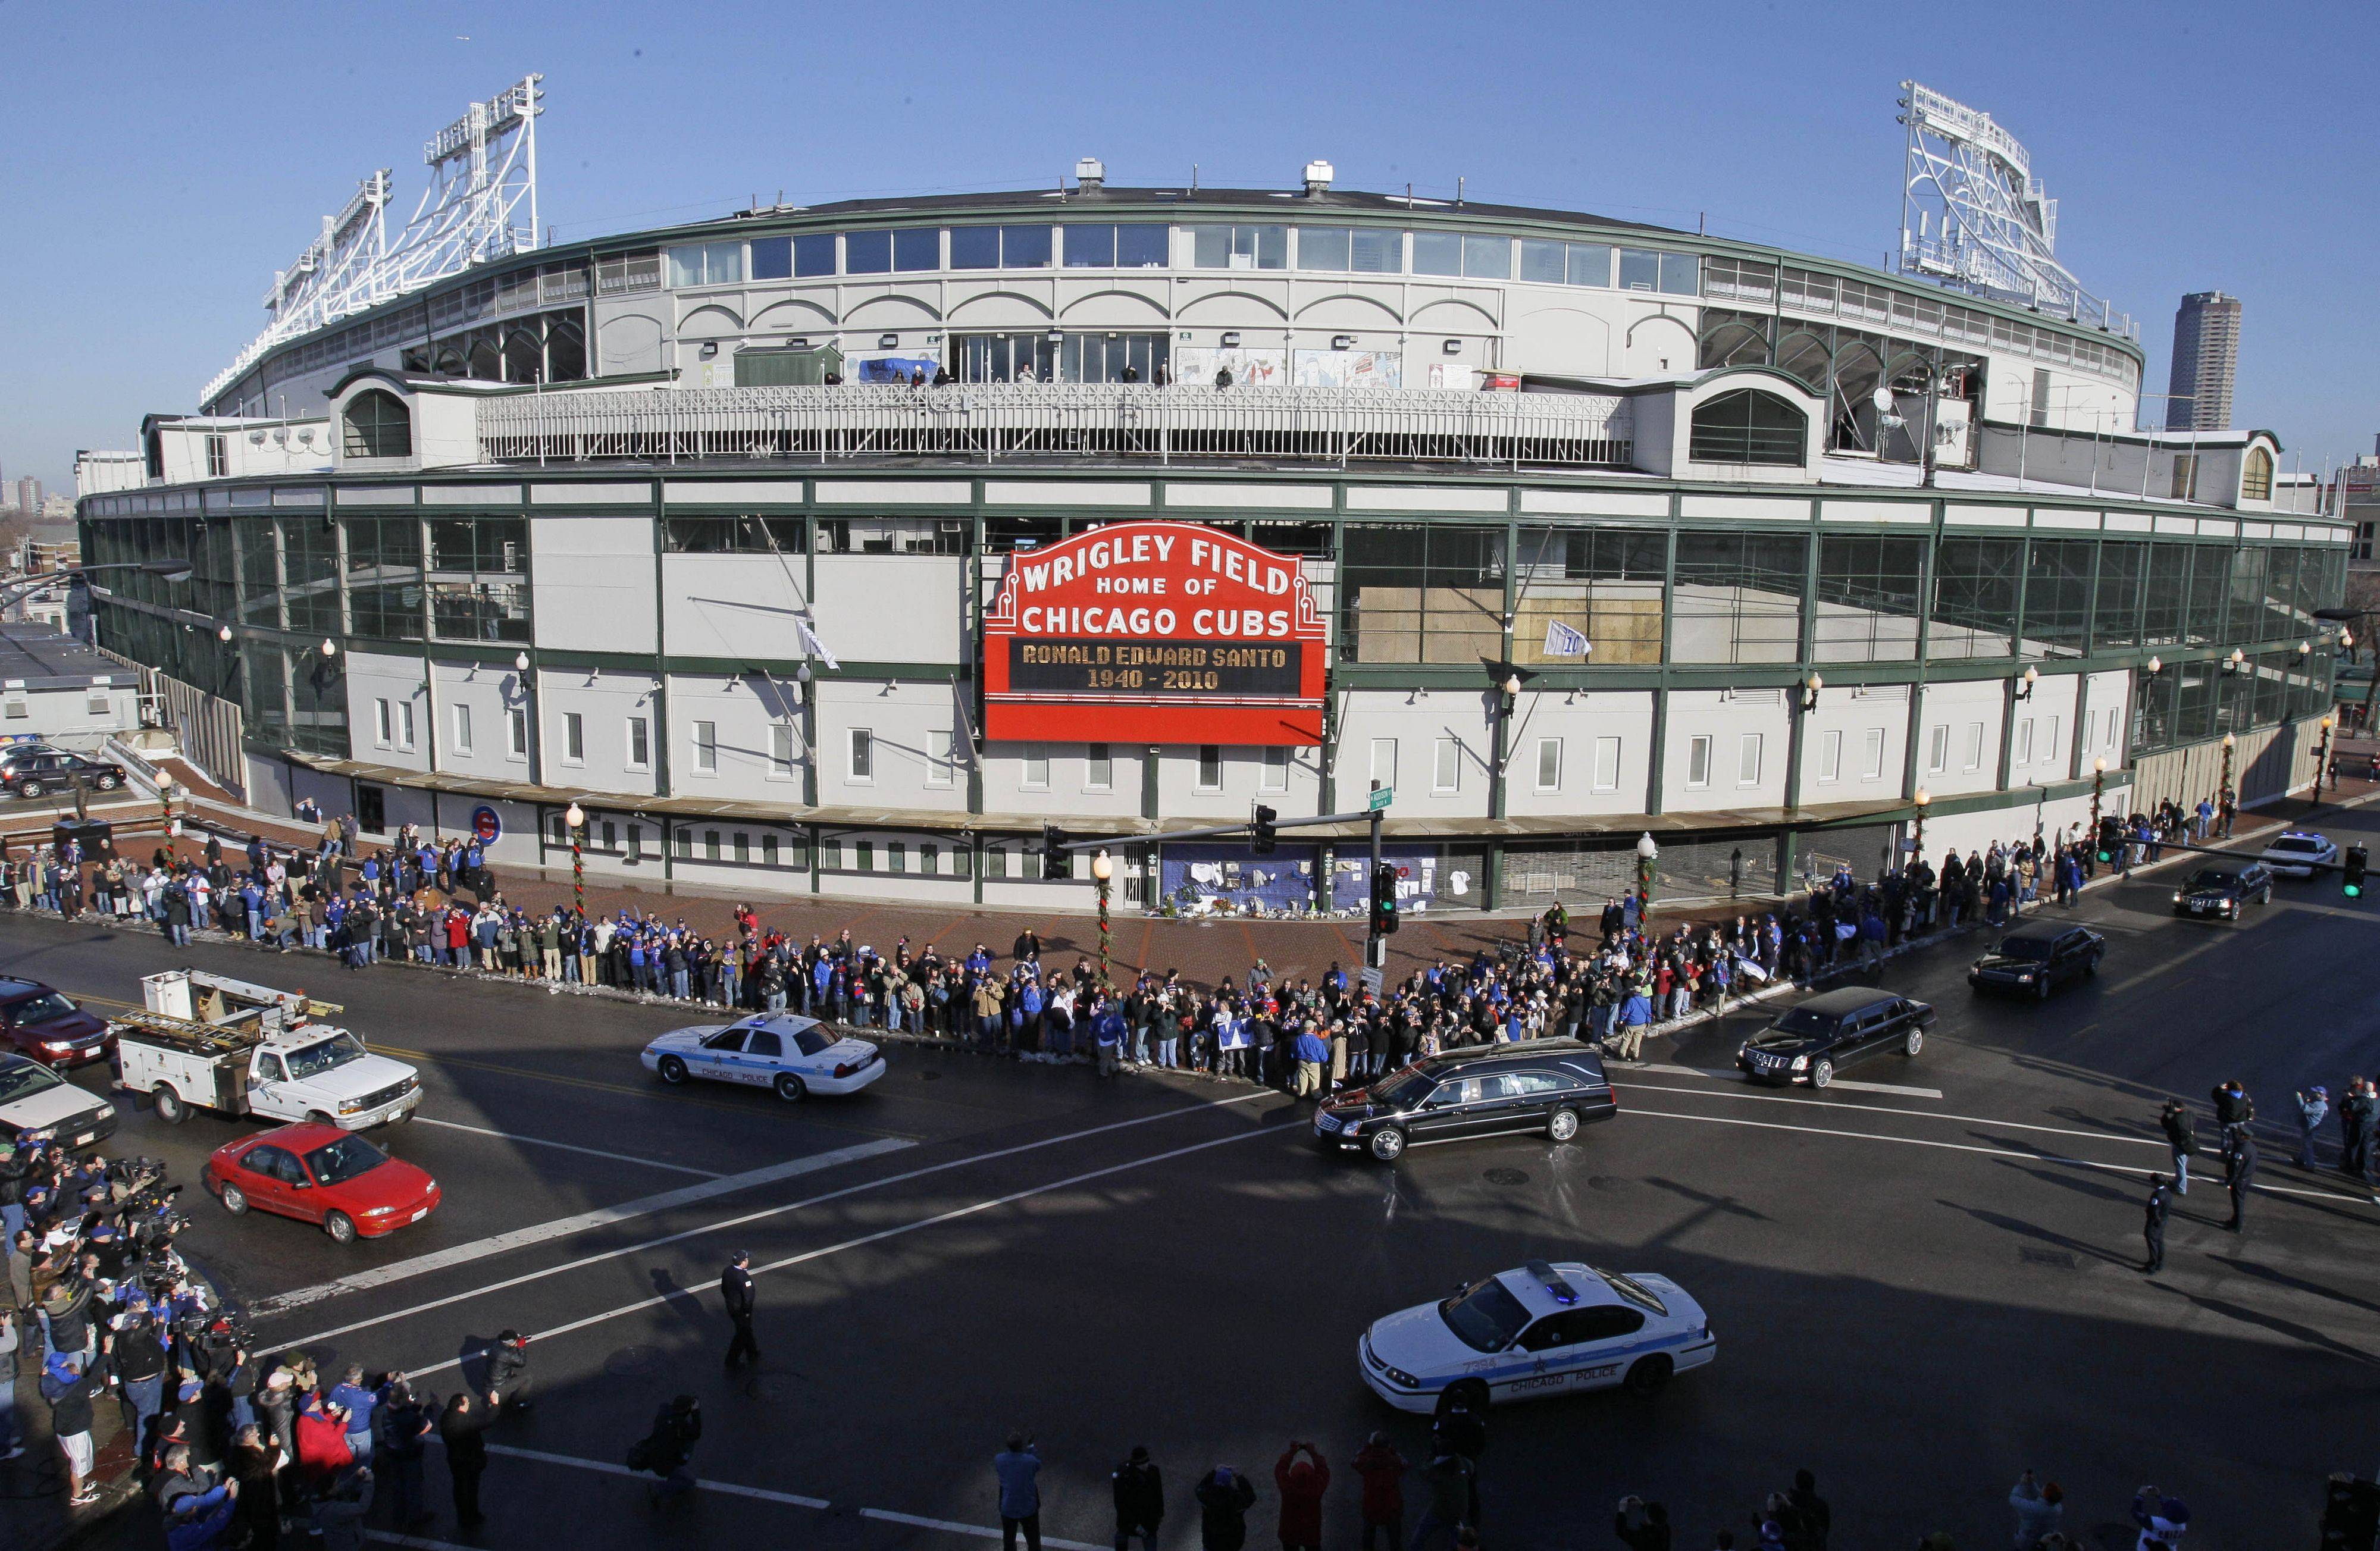 The funeral procession for Ron Santo drives past Wrigley Field.